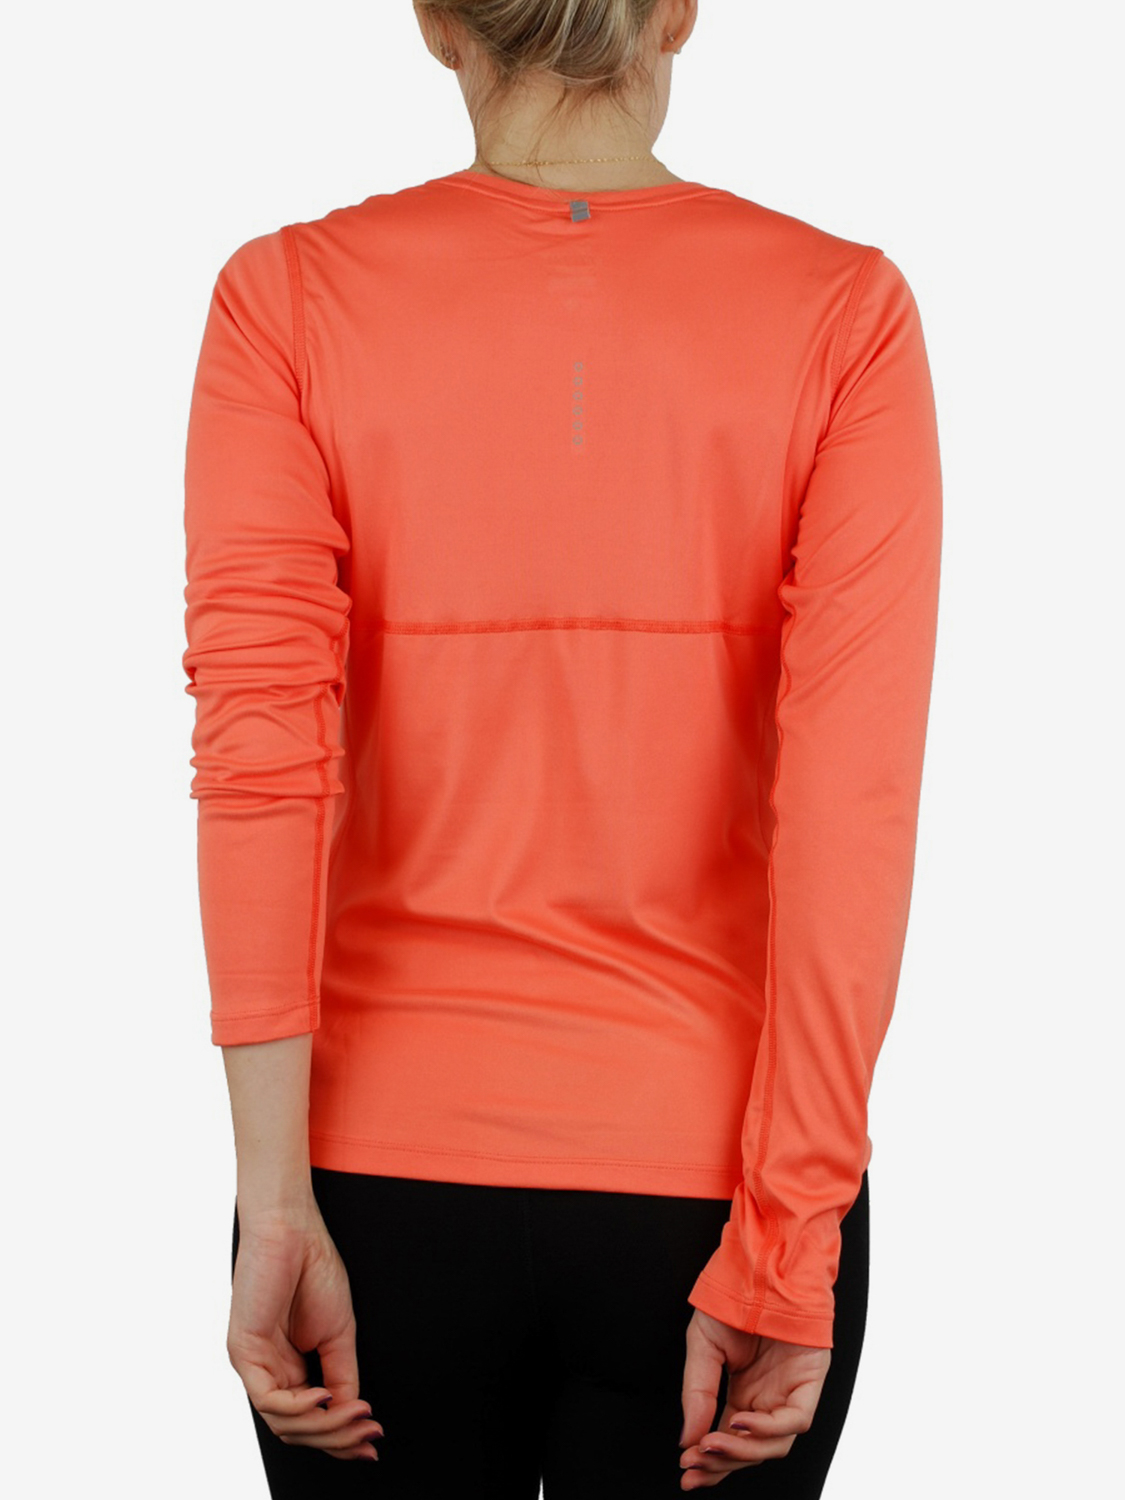 Tričko Nike Miler Long Sleeve (2)